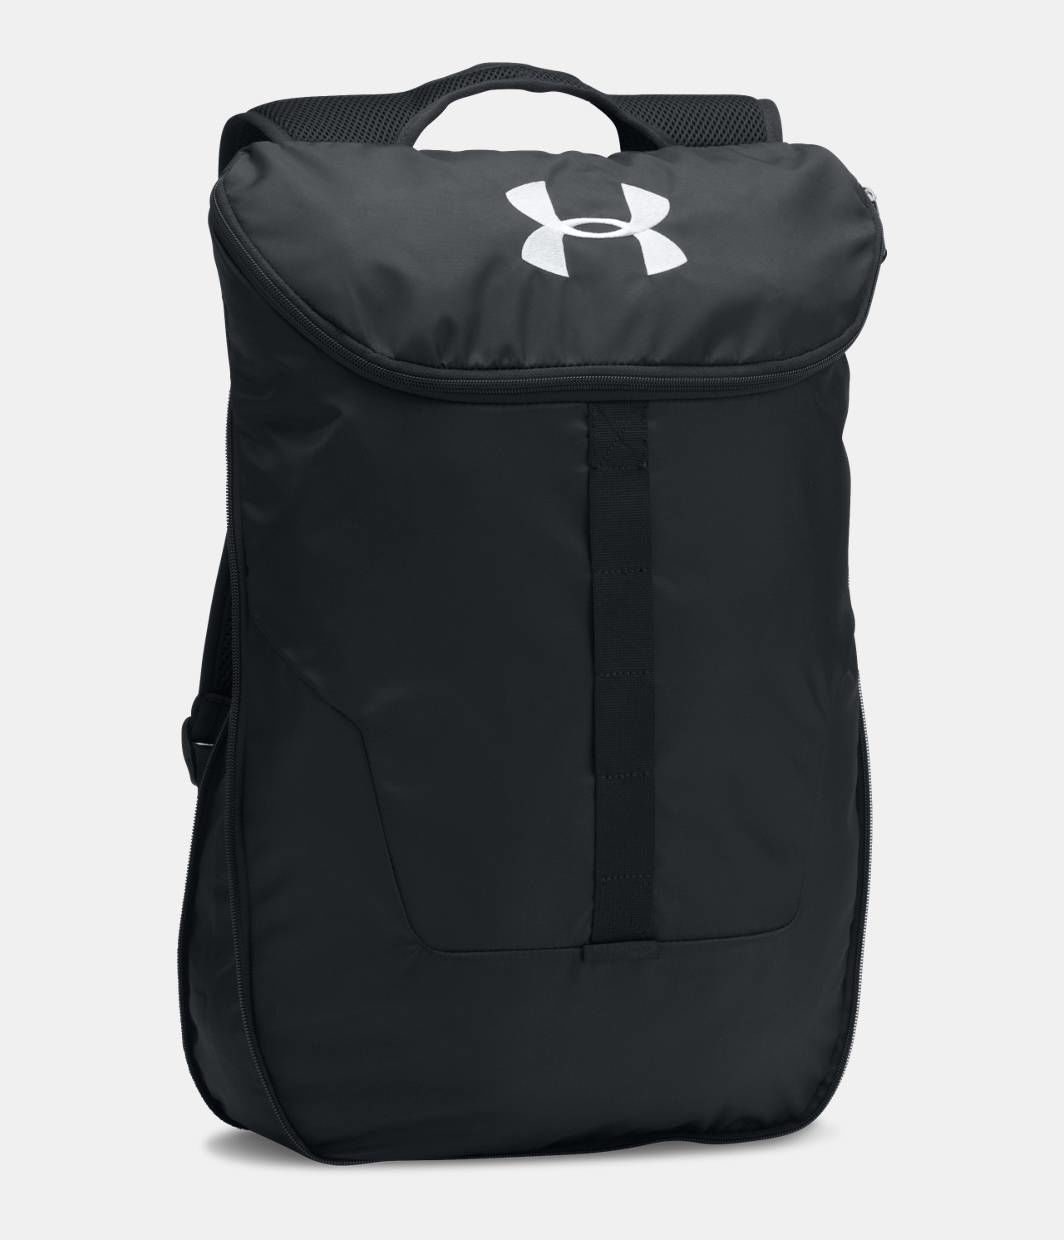 Under Armour Expandable Black Sackpack